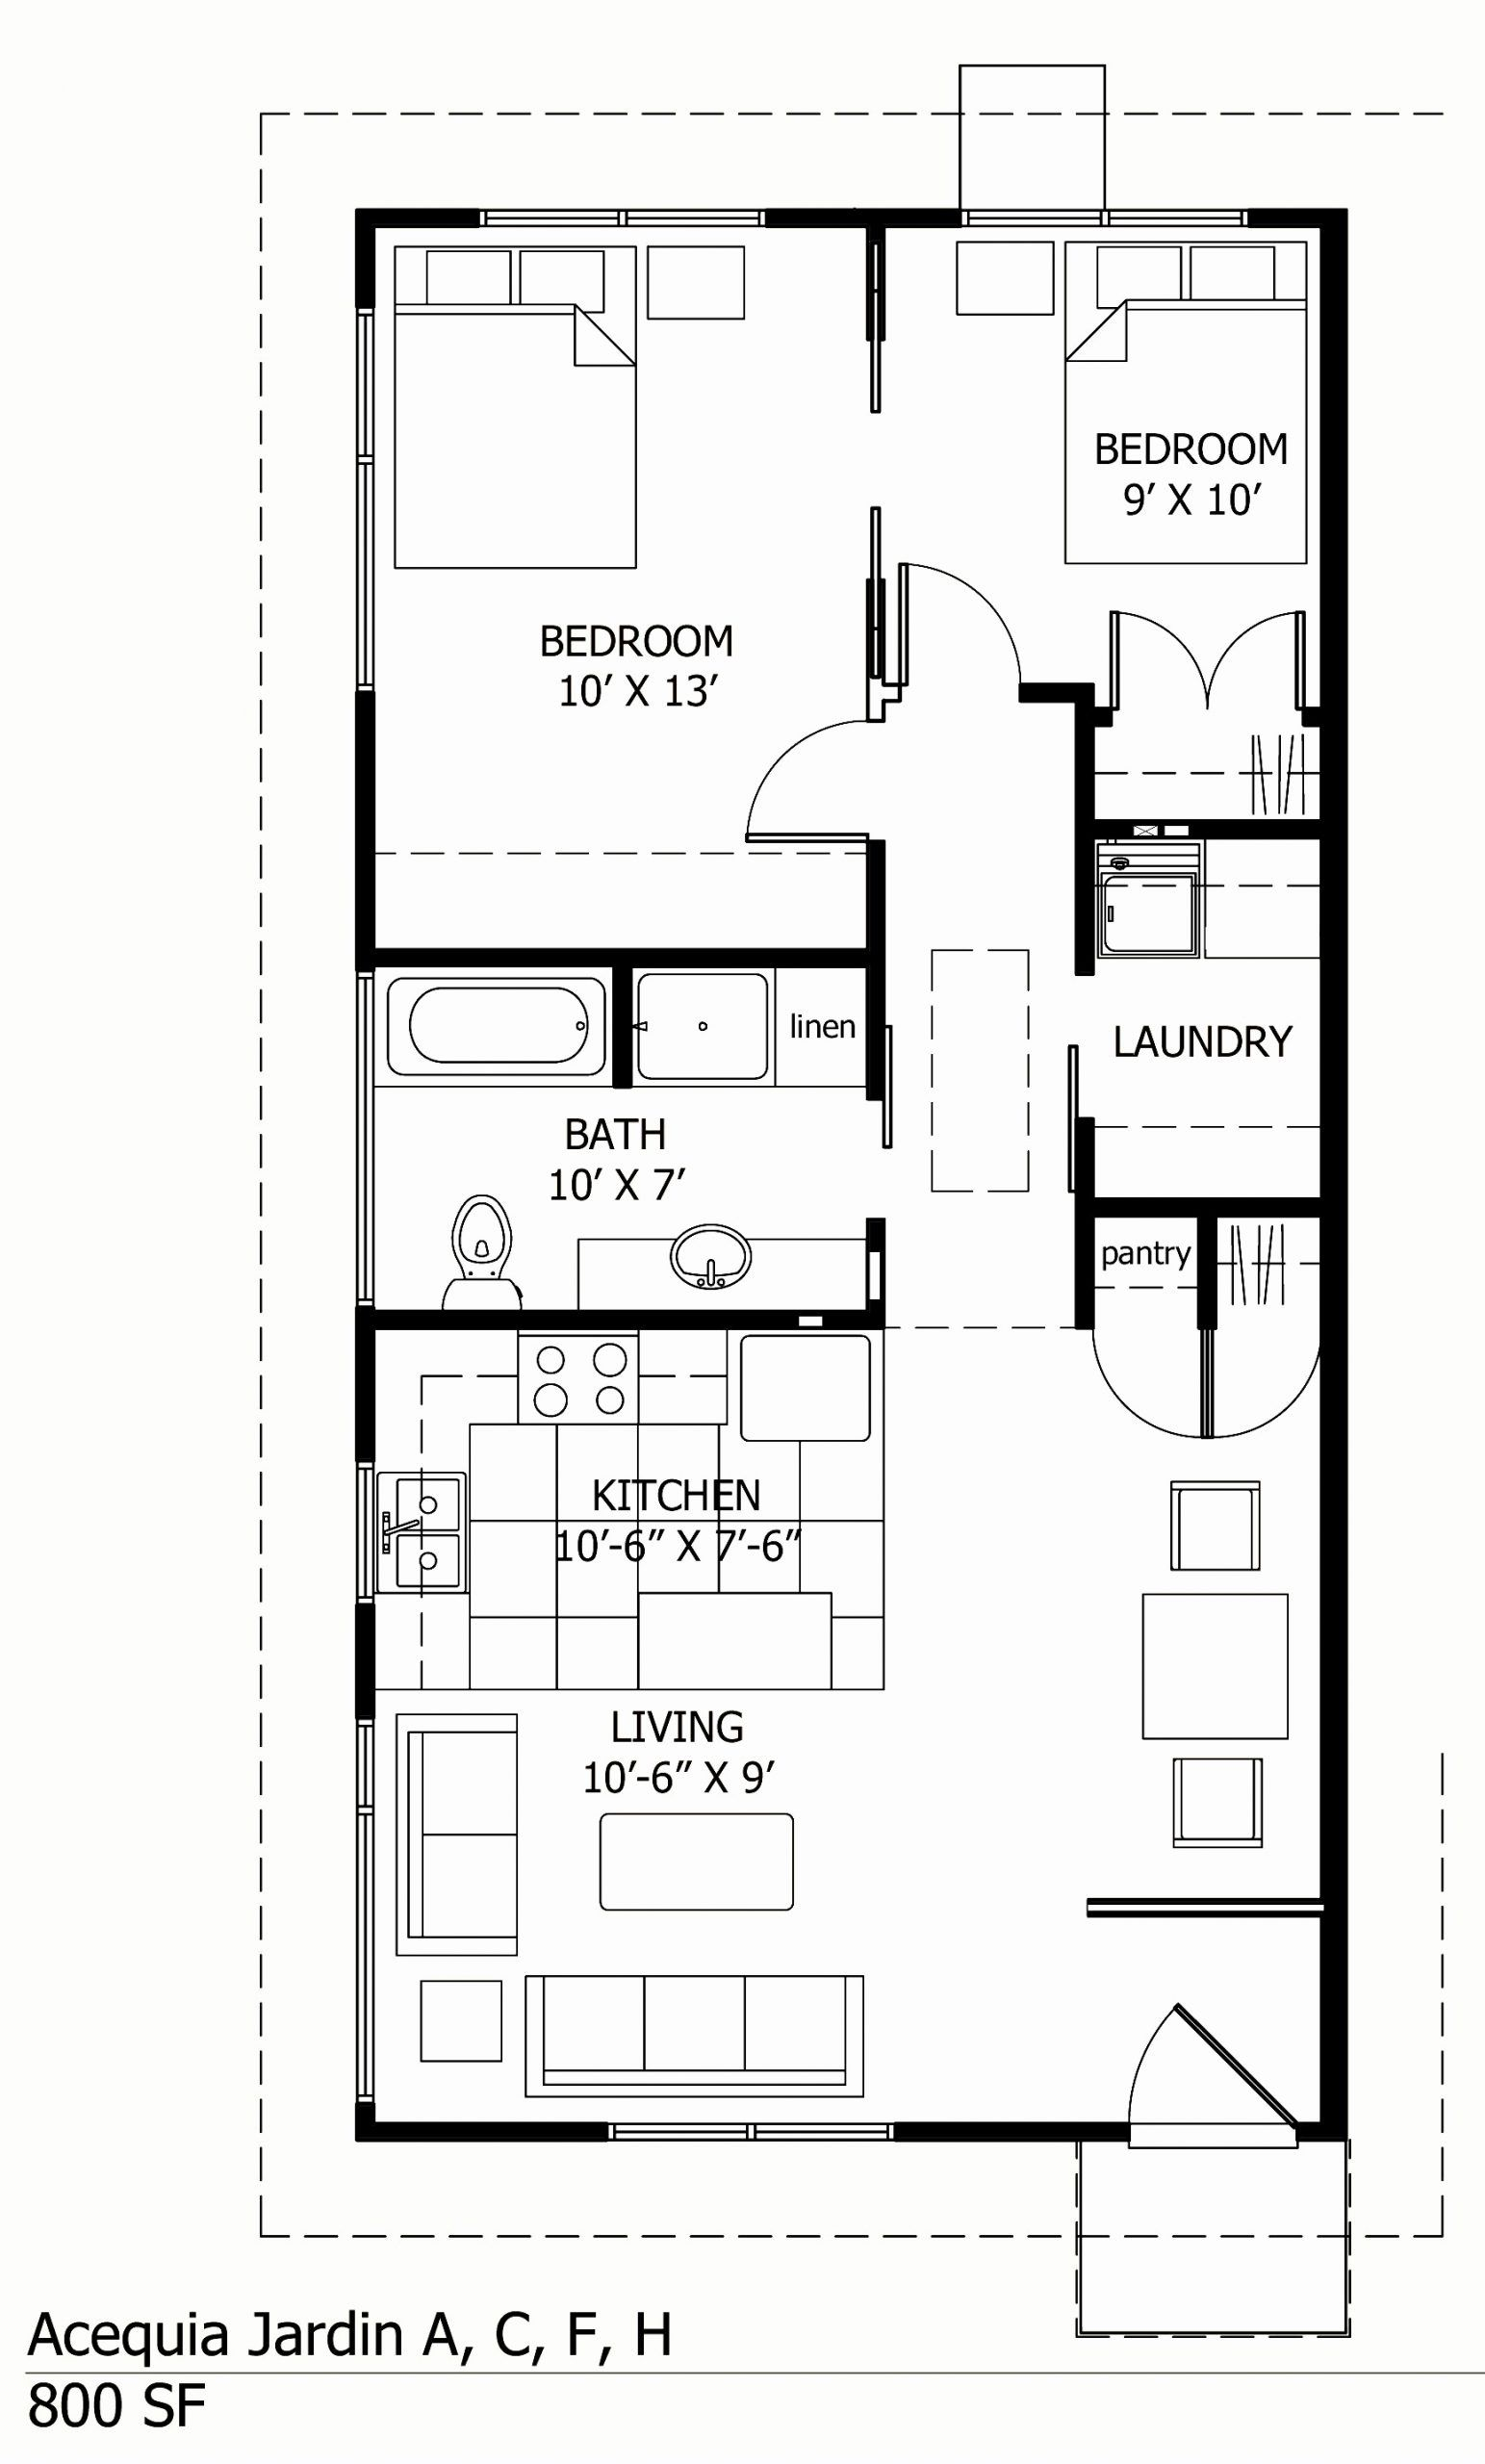 900 Sq Feet House Plans Inspirational 800 Sq Ft In 2020 Guest House Plans Small Modern House Plans Cottage House Plans